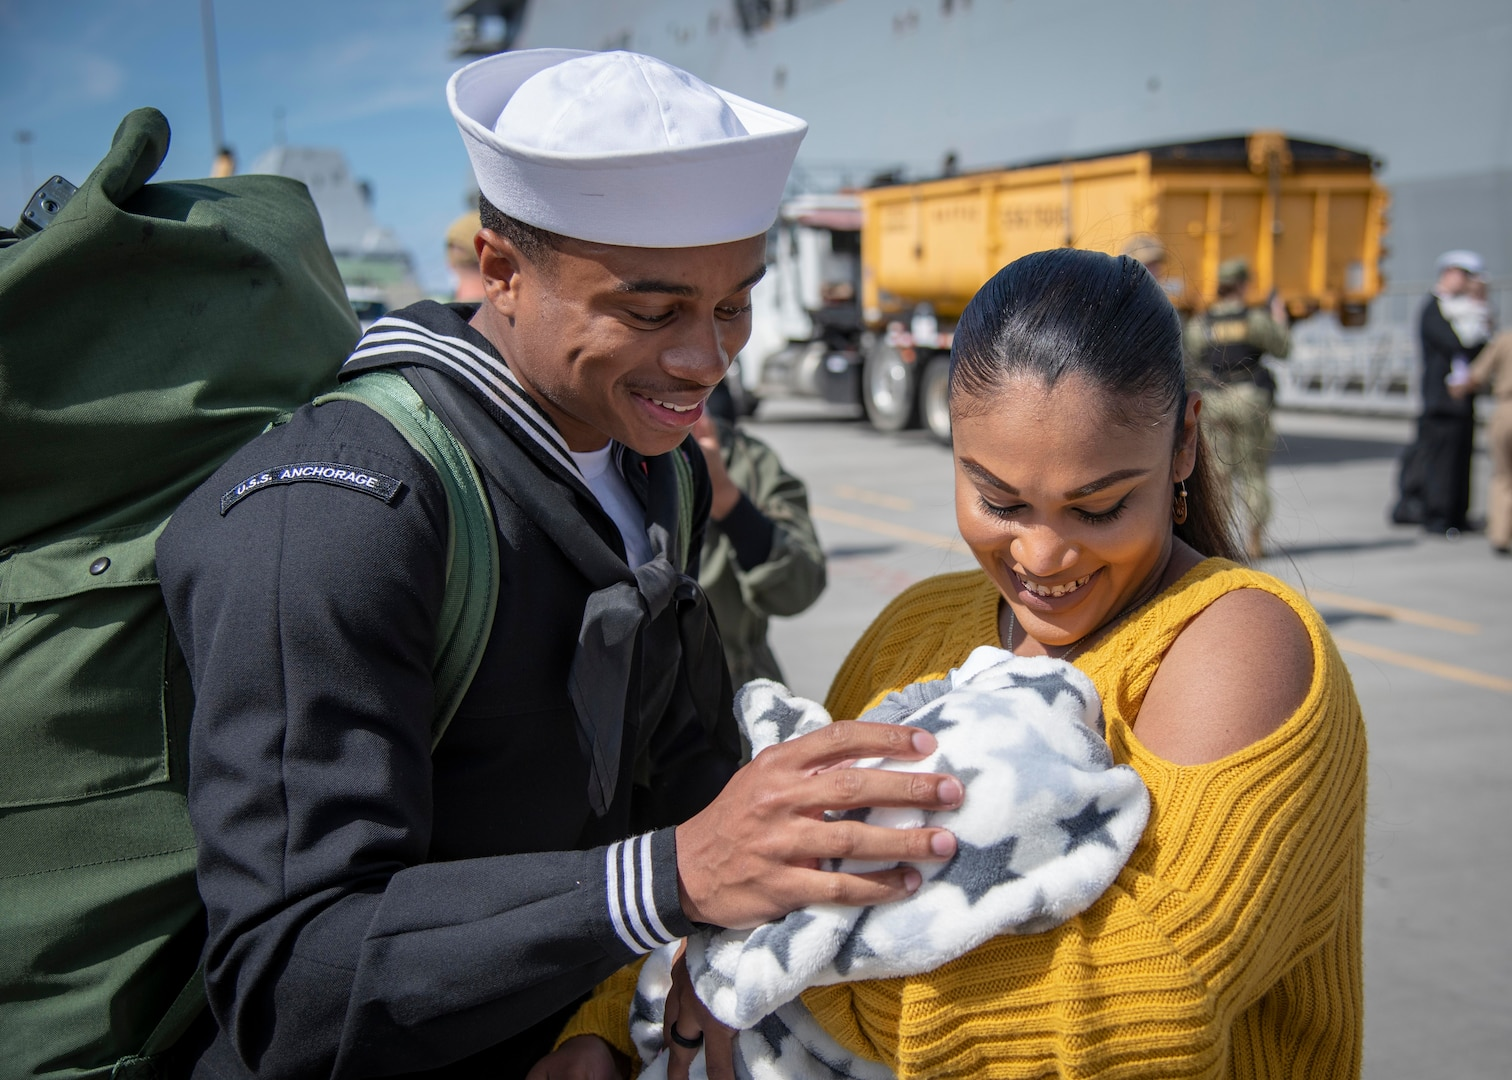 Service member looks at newborn in spouse's arms